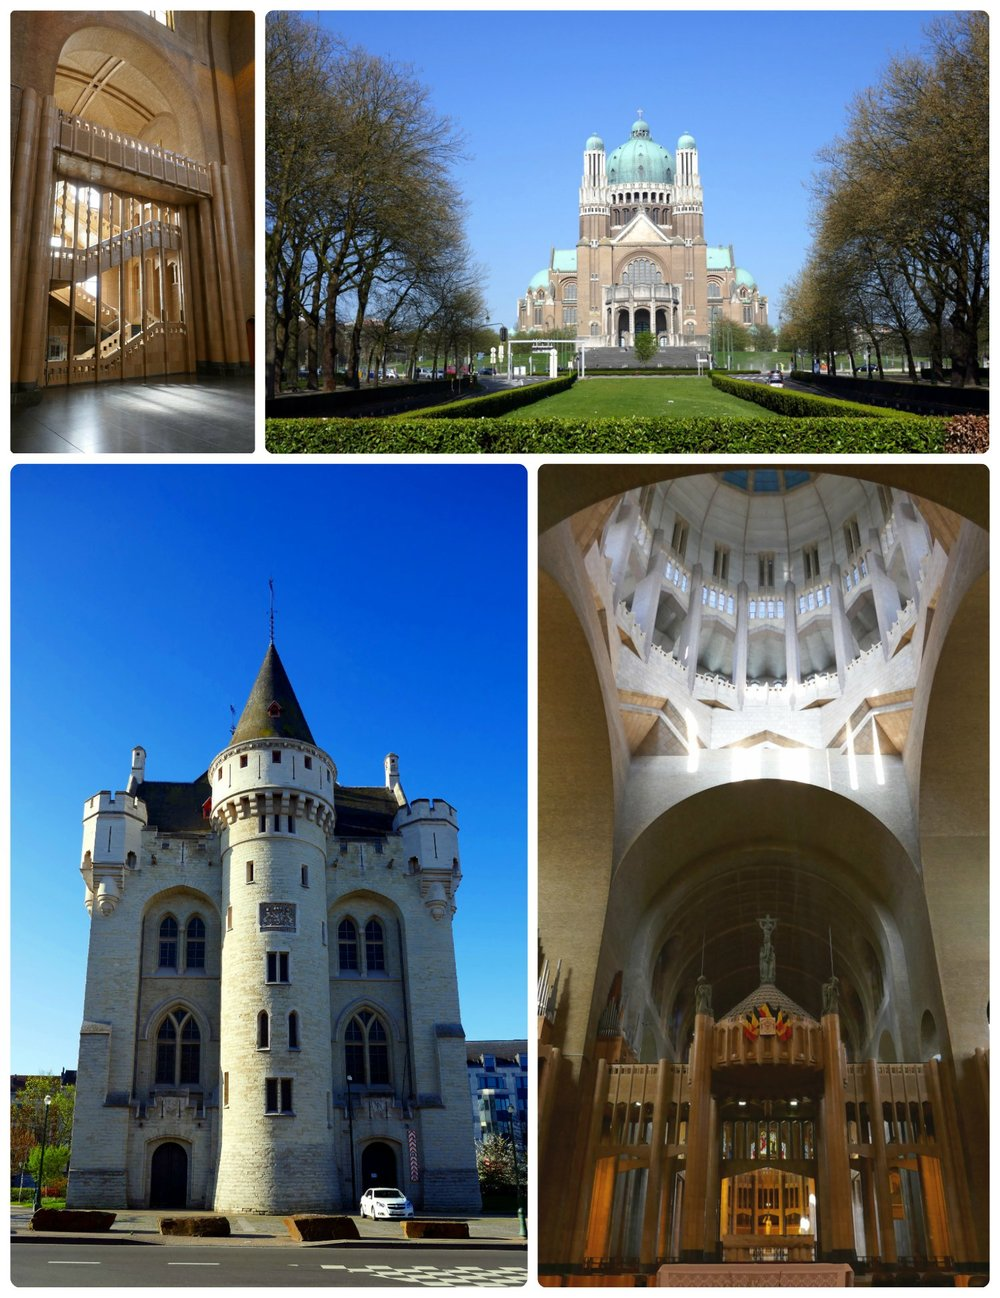 Clockwise: Staircase inside of National Basilica of the Sacred Heart, walking up to the National Basilica of the Sacred Heart is stunning with the park and walkway in front of it, inside the National Basilica of the Sacred Heart and view of the dome, exterior of Halle Gate.